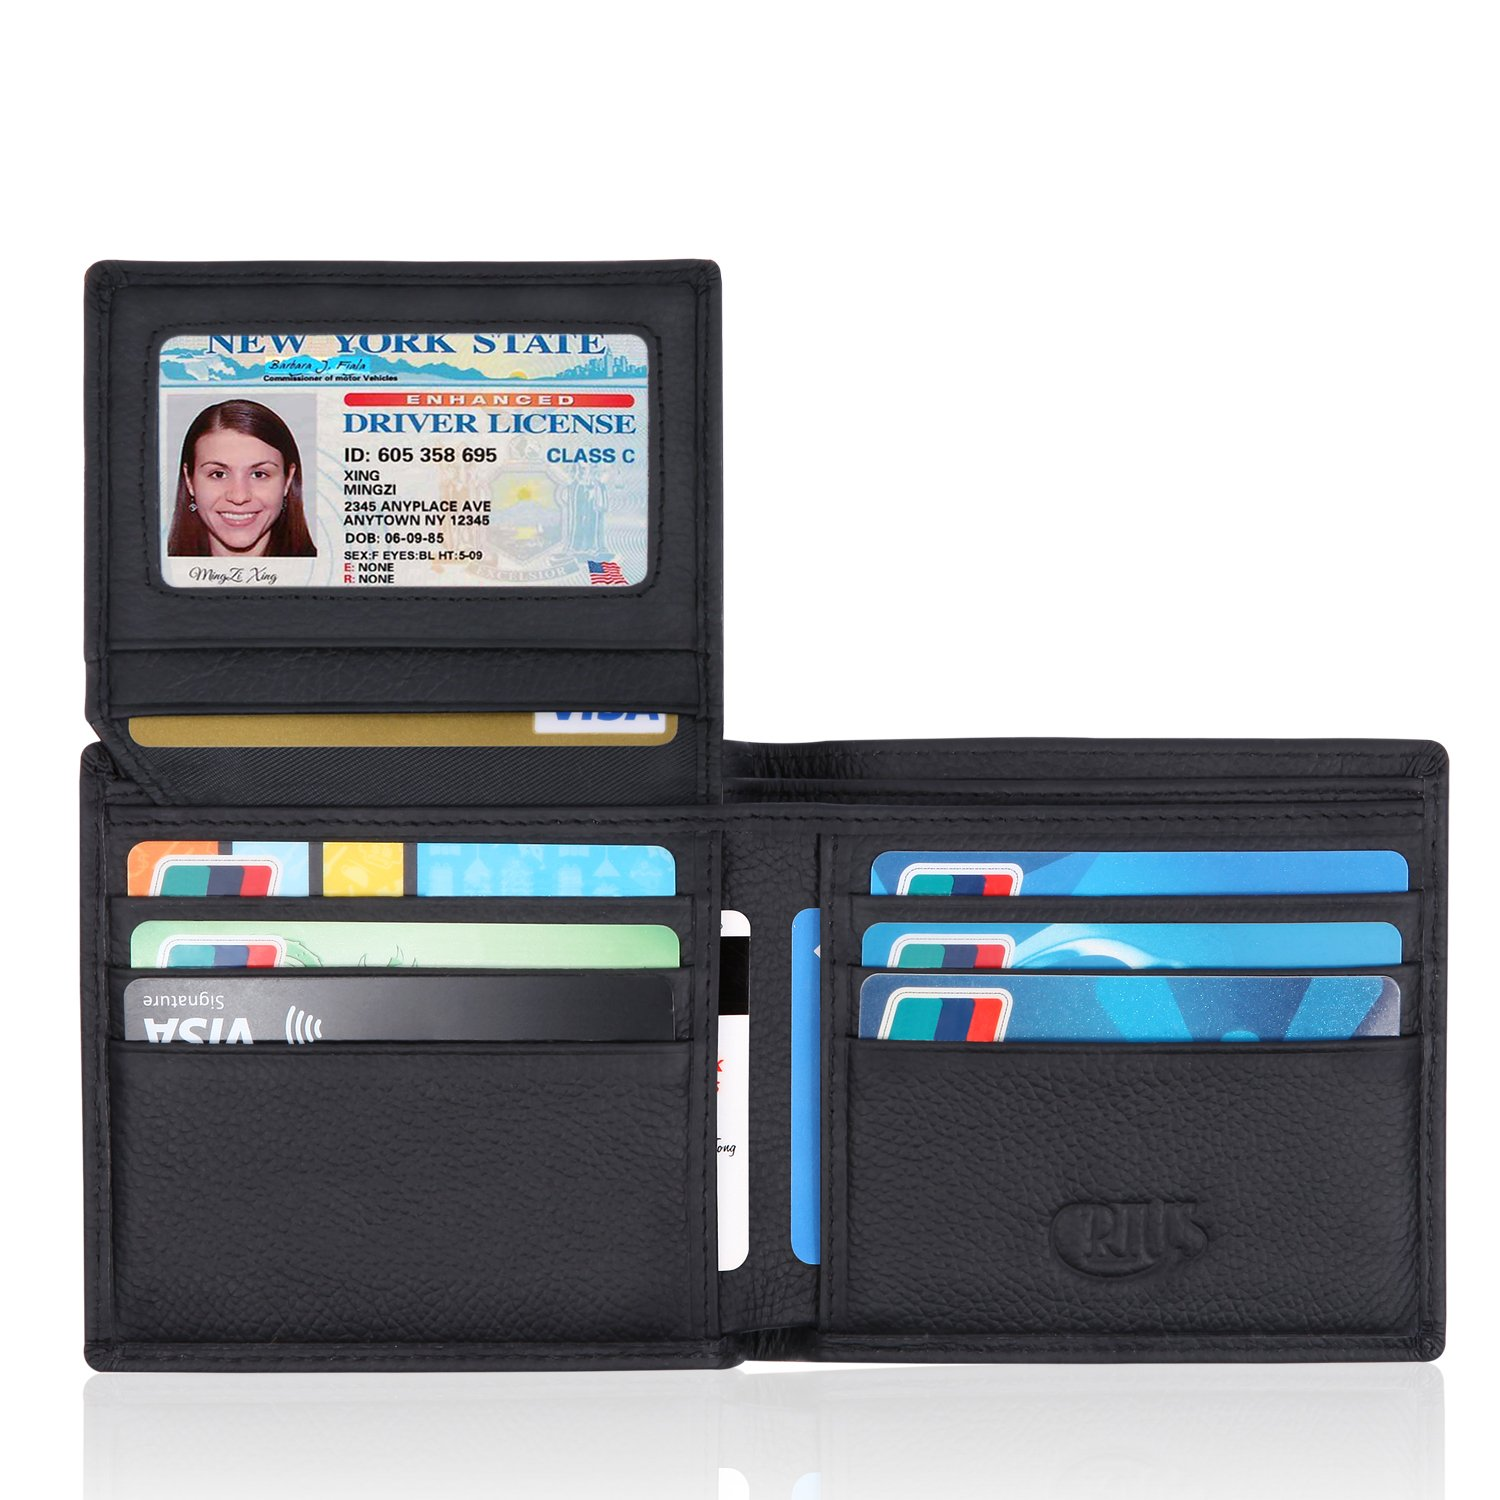 Crius RFID Blocking Stylish Leather Wallet for Men black,Credit Card Protector product image